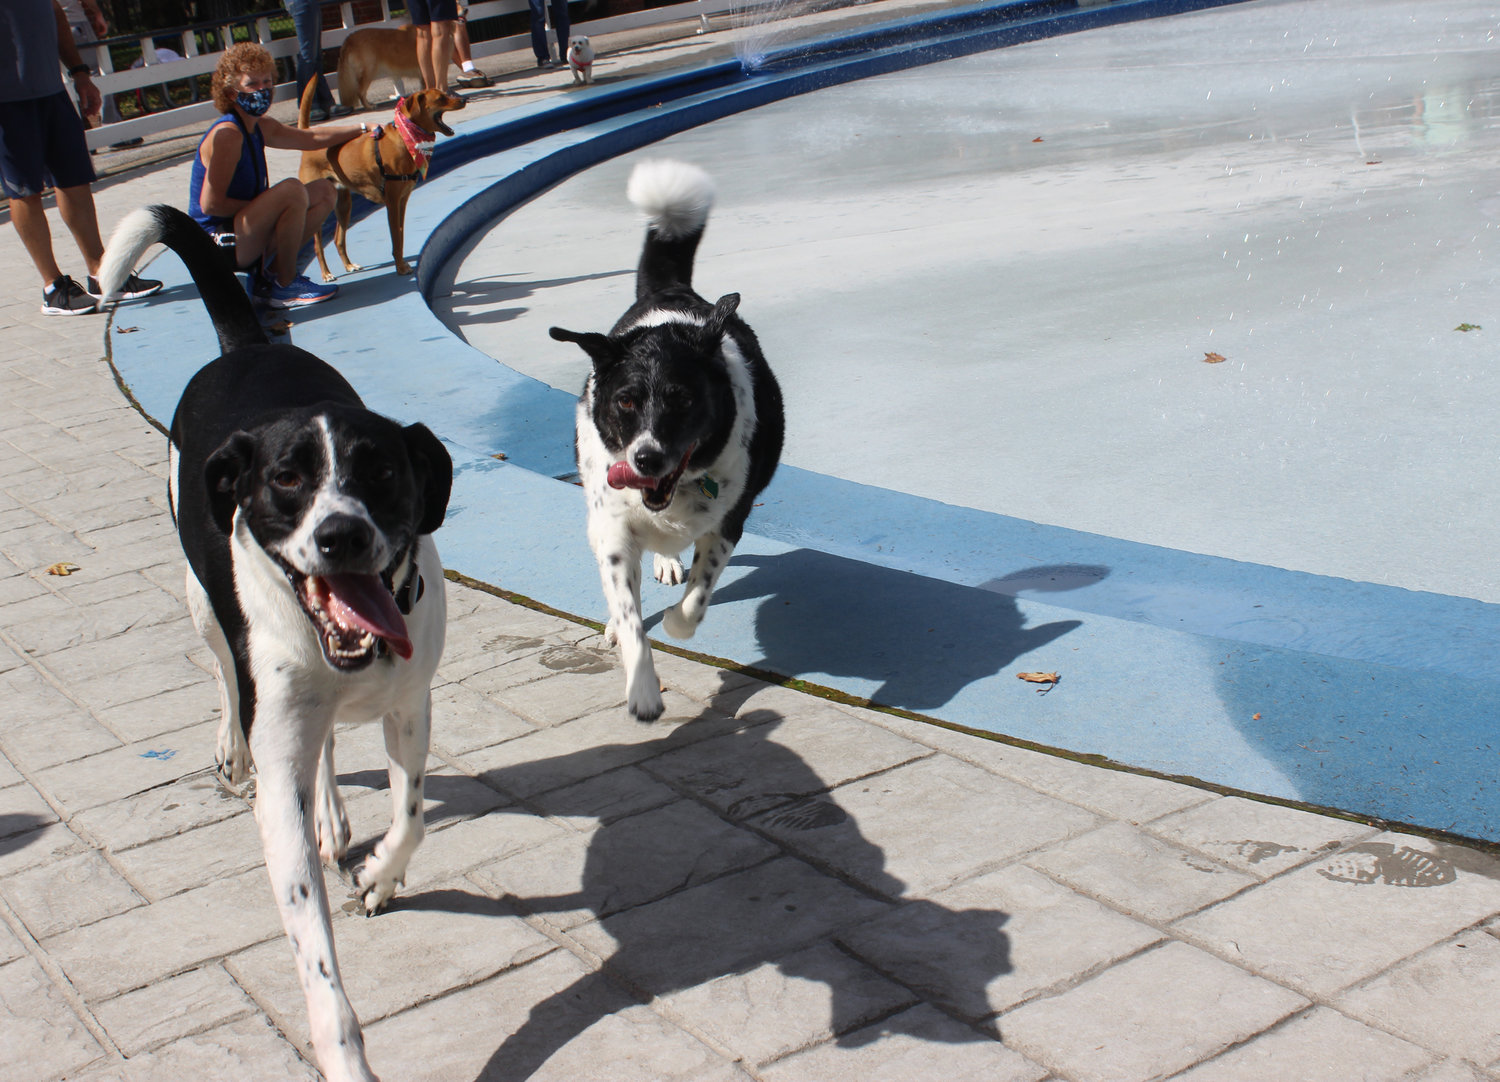 Dogs raced each other and played together during the county's first Water Bark, when three local splash parks were reserved for dogs and their owners.